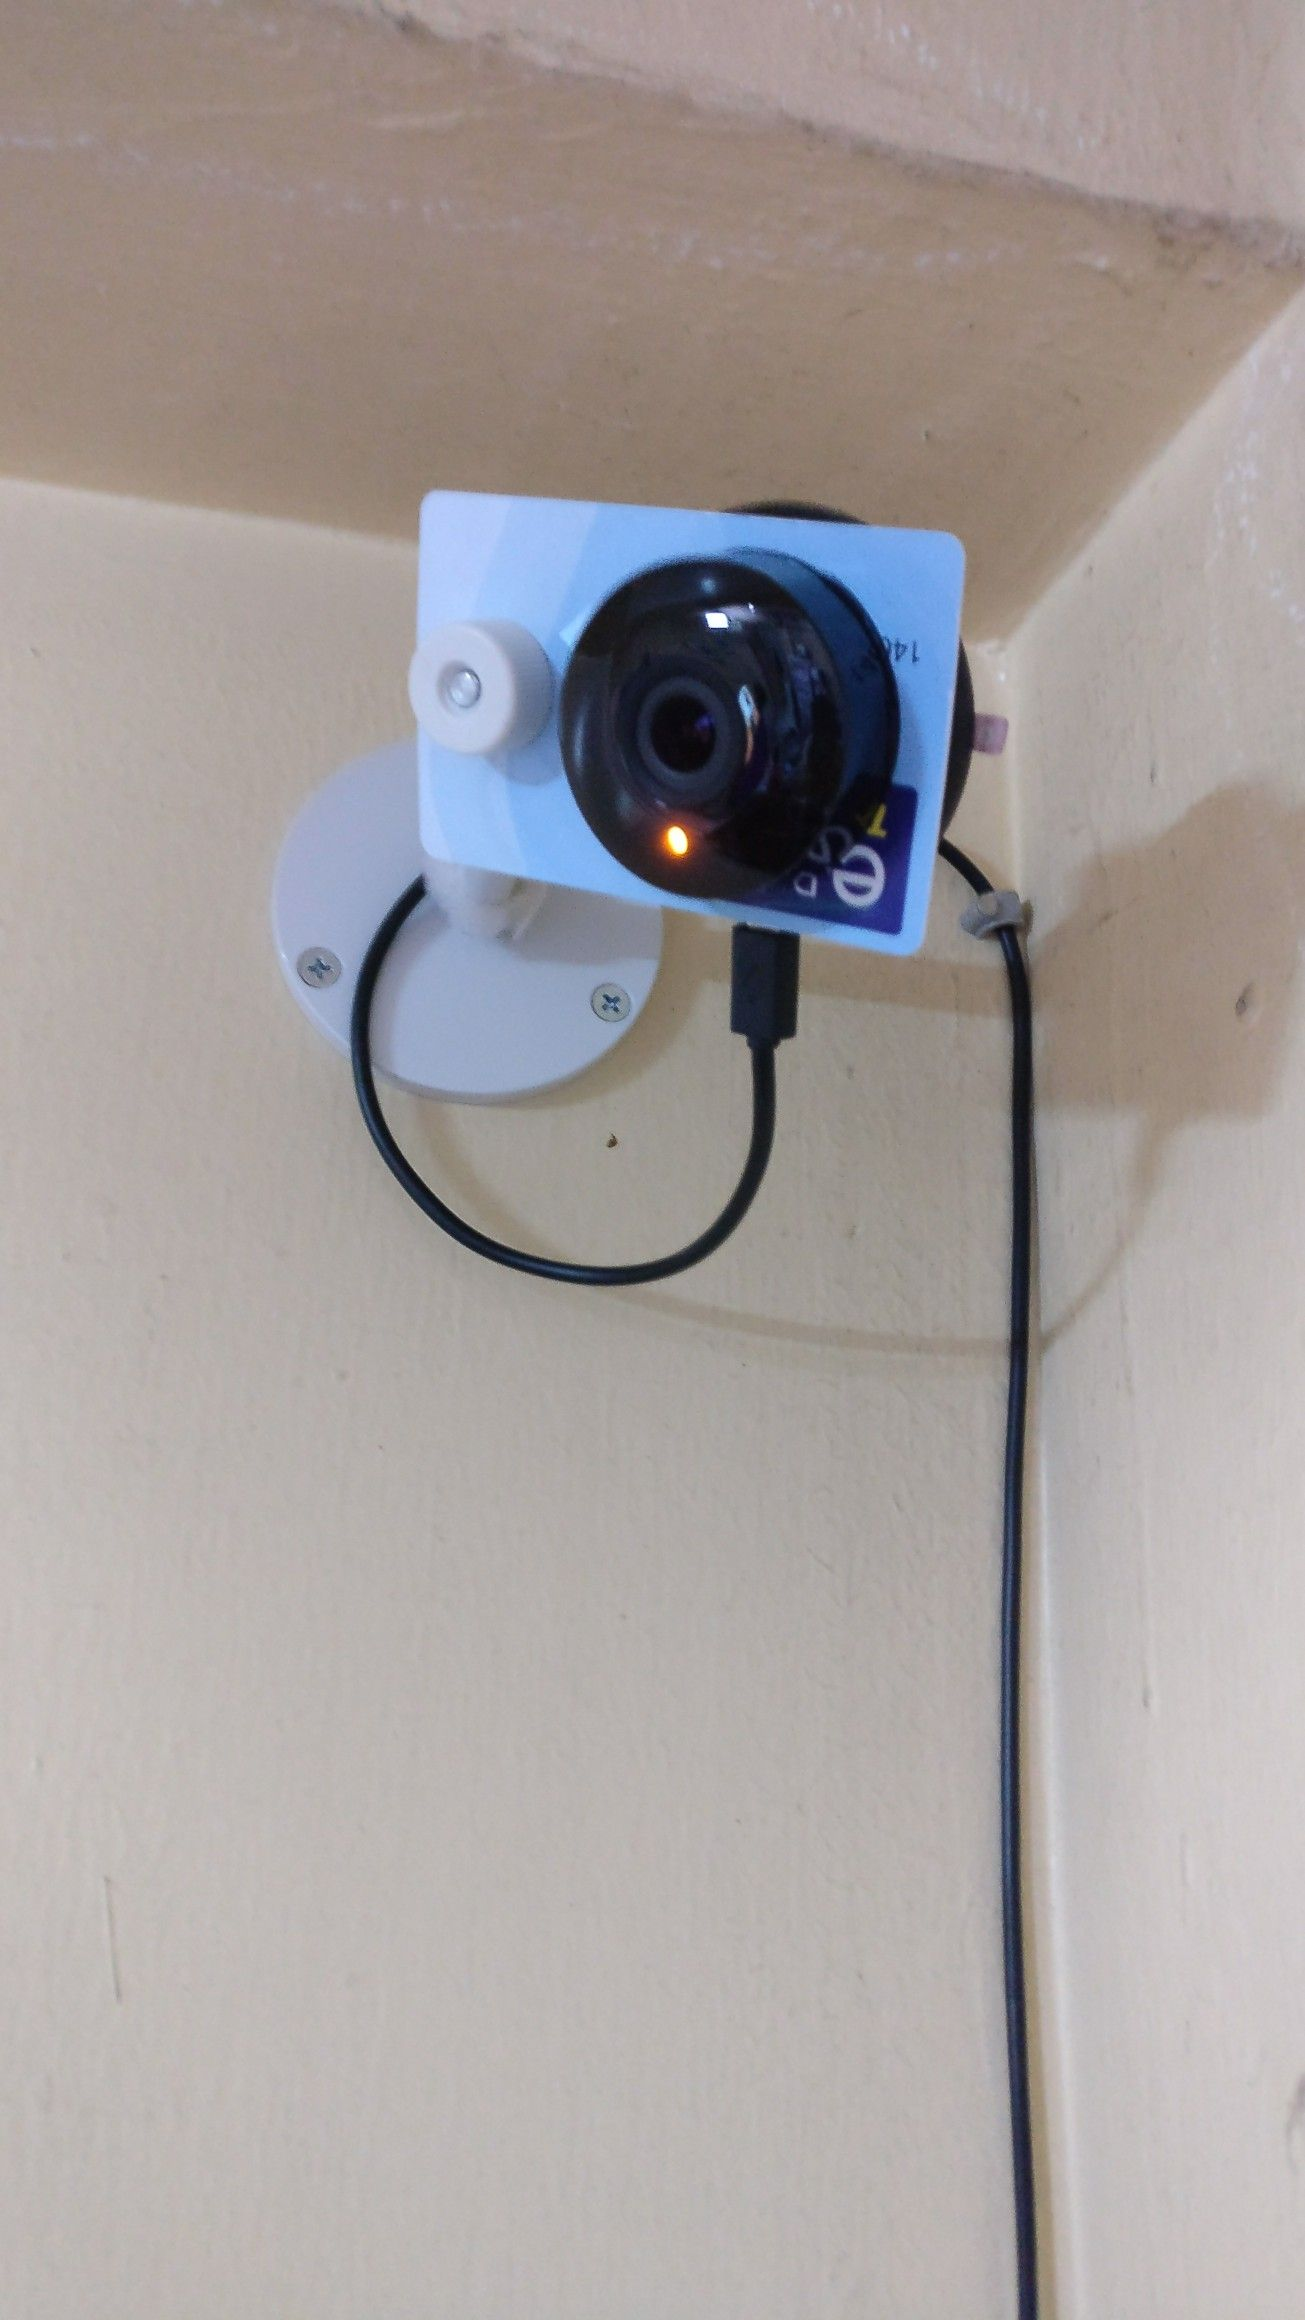 DIY Yi Home Camera Mount using any cctv camera mount and a plastic